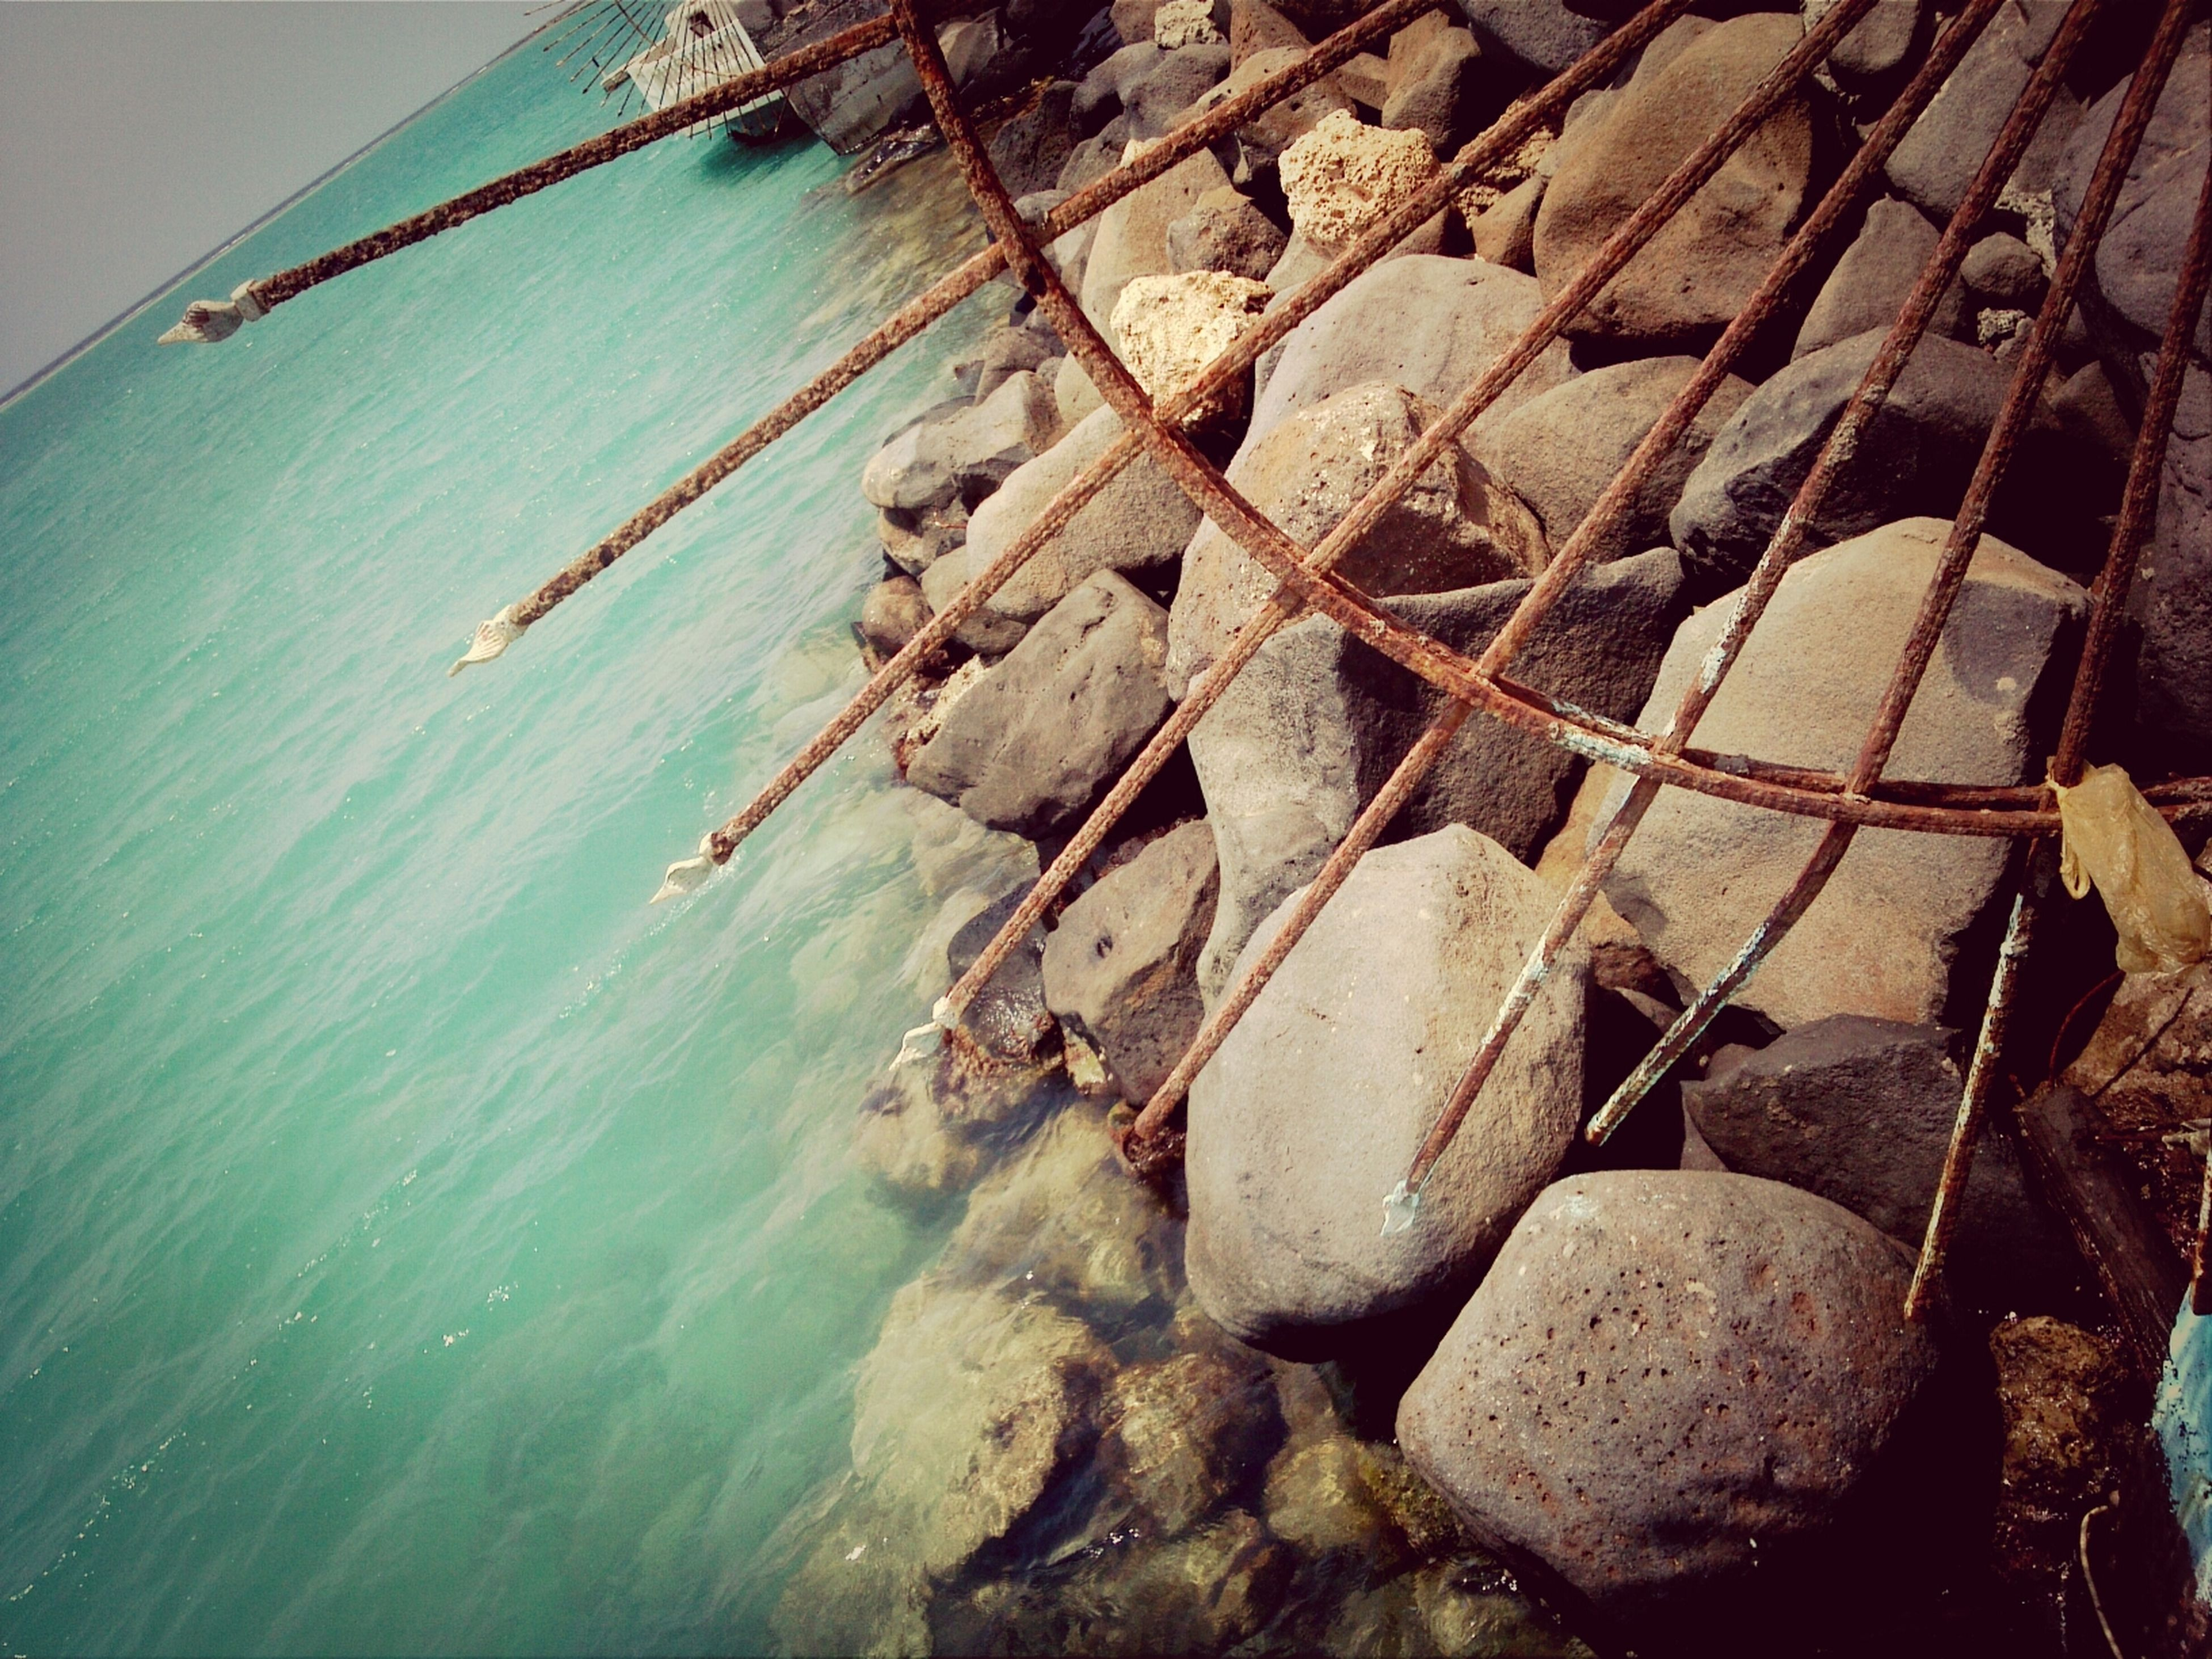 water, sea, rock - object, nautical vessel, horizon over water, beach, tranquility, high angle view, boat, shore, nature, day, transportation, tranquil scene, outdoors, rope, rippled, wood - material, pier, scenics